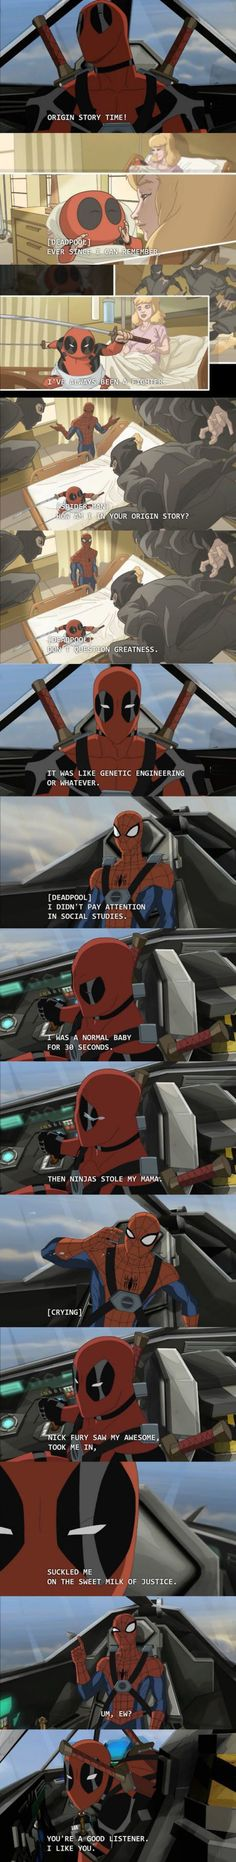 Deadpool Origin Story Time!  // funny pictures - funny photos - funny images - funny pics - funny quotes - #lol #humor #funnypictures: